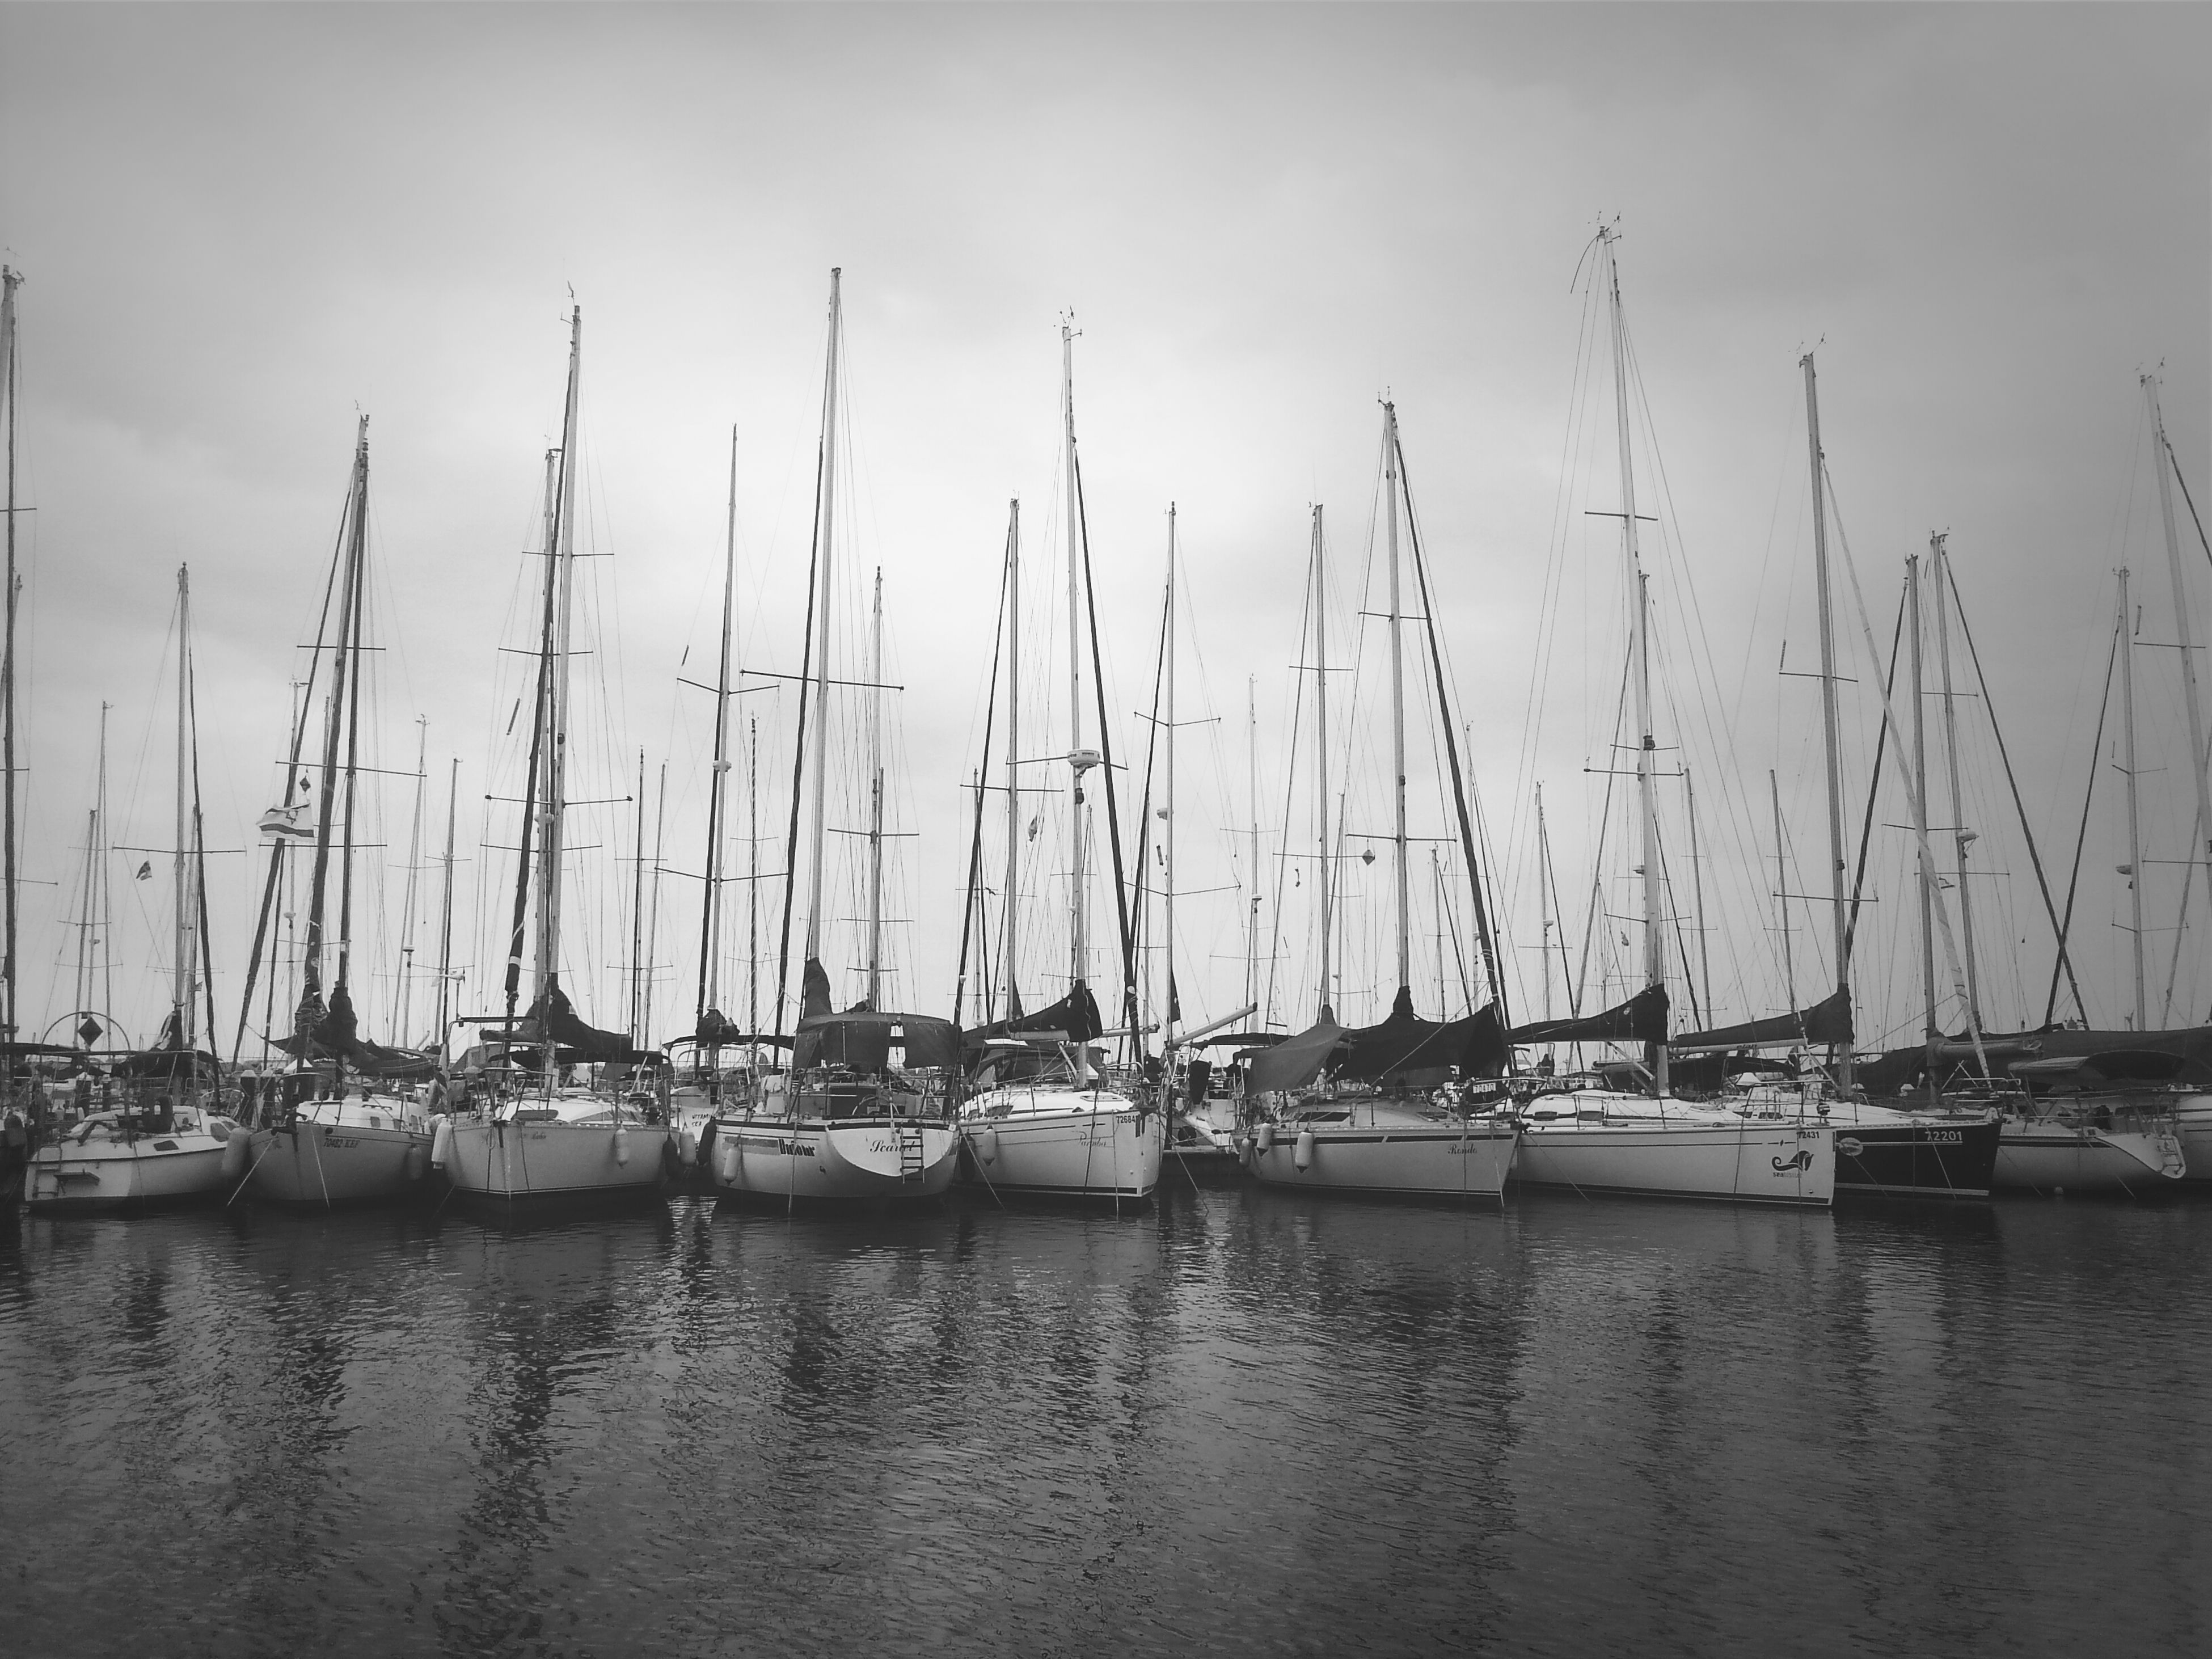 nautical vessel, water, transportation, boat, moored, mode of transport, mast, sailboat, waterfront, harbor, sea, sky, reflection, lake, nature, tranquility, outdoors, tranquil scene, travel, day